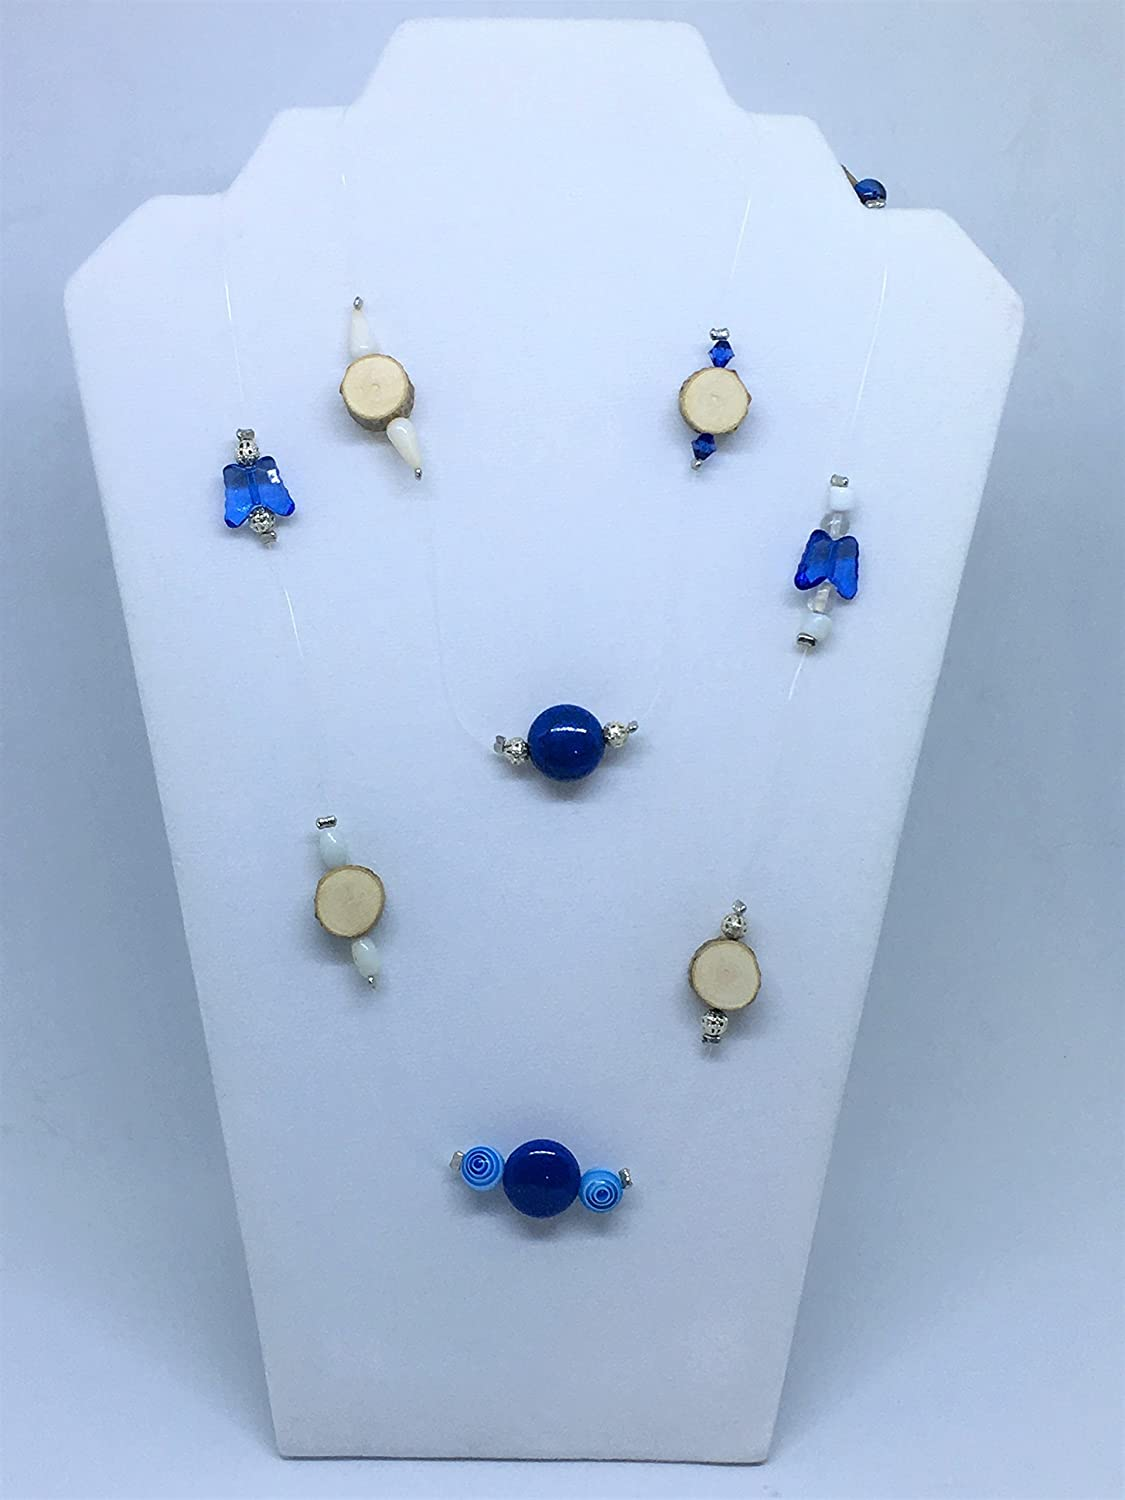 Long Strand Necklace Wood Slice Blue Nature Beaded Jewelry Max 68% OFF Outlet ☆ Free Shipping J